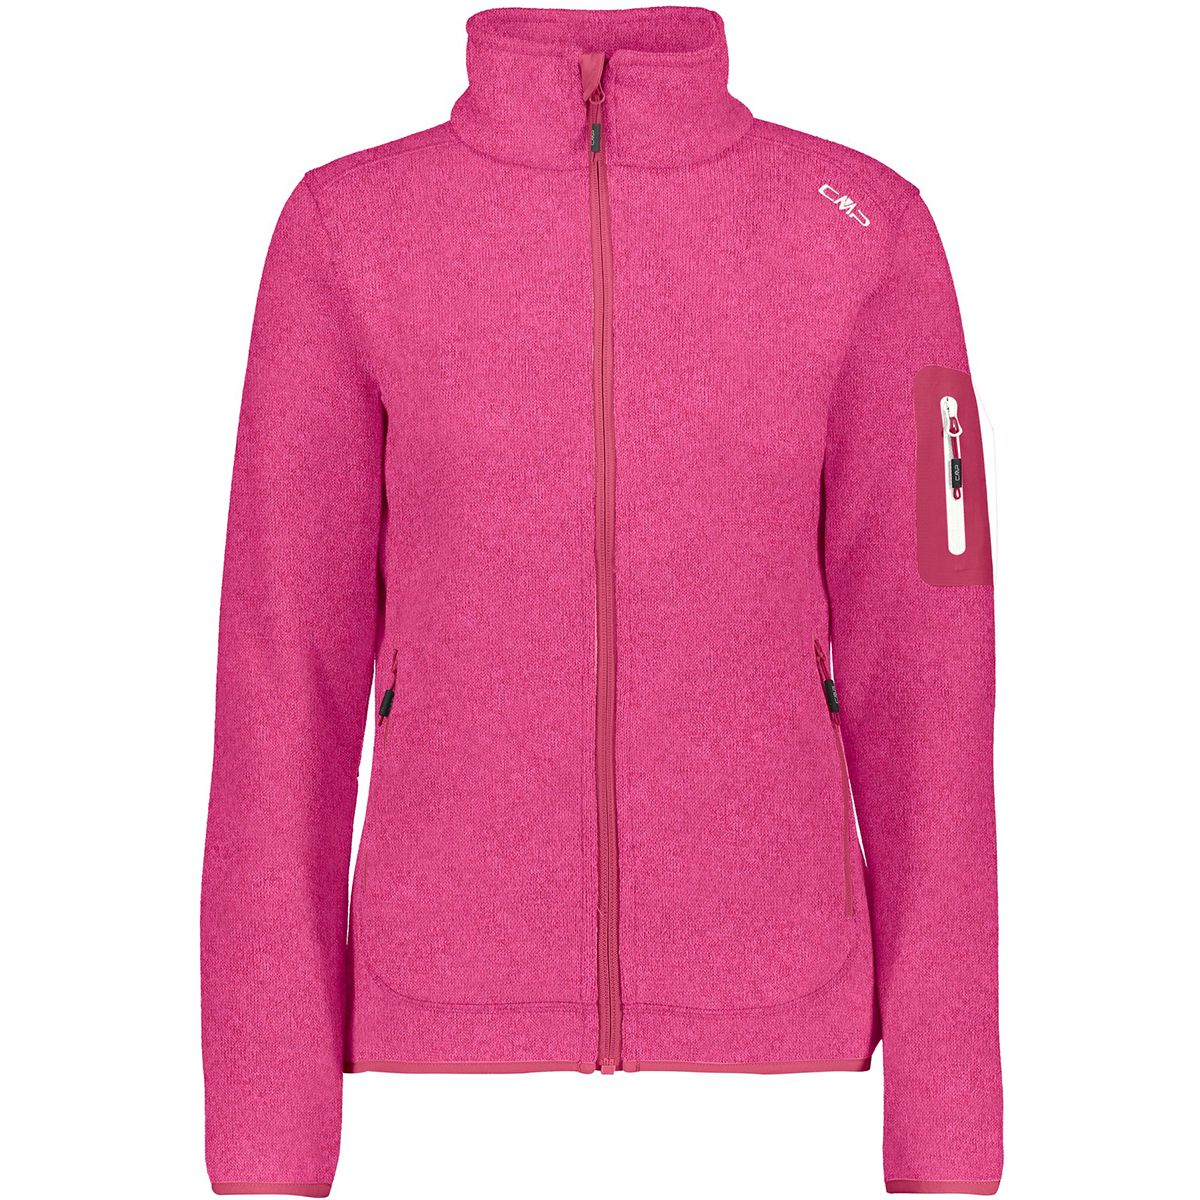 CMP Damen Strick Fleece Jacke (Größe XXL, Pink) | Fleecejacken > Damen